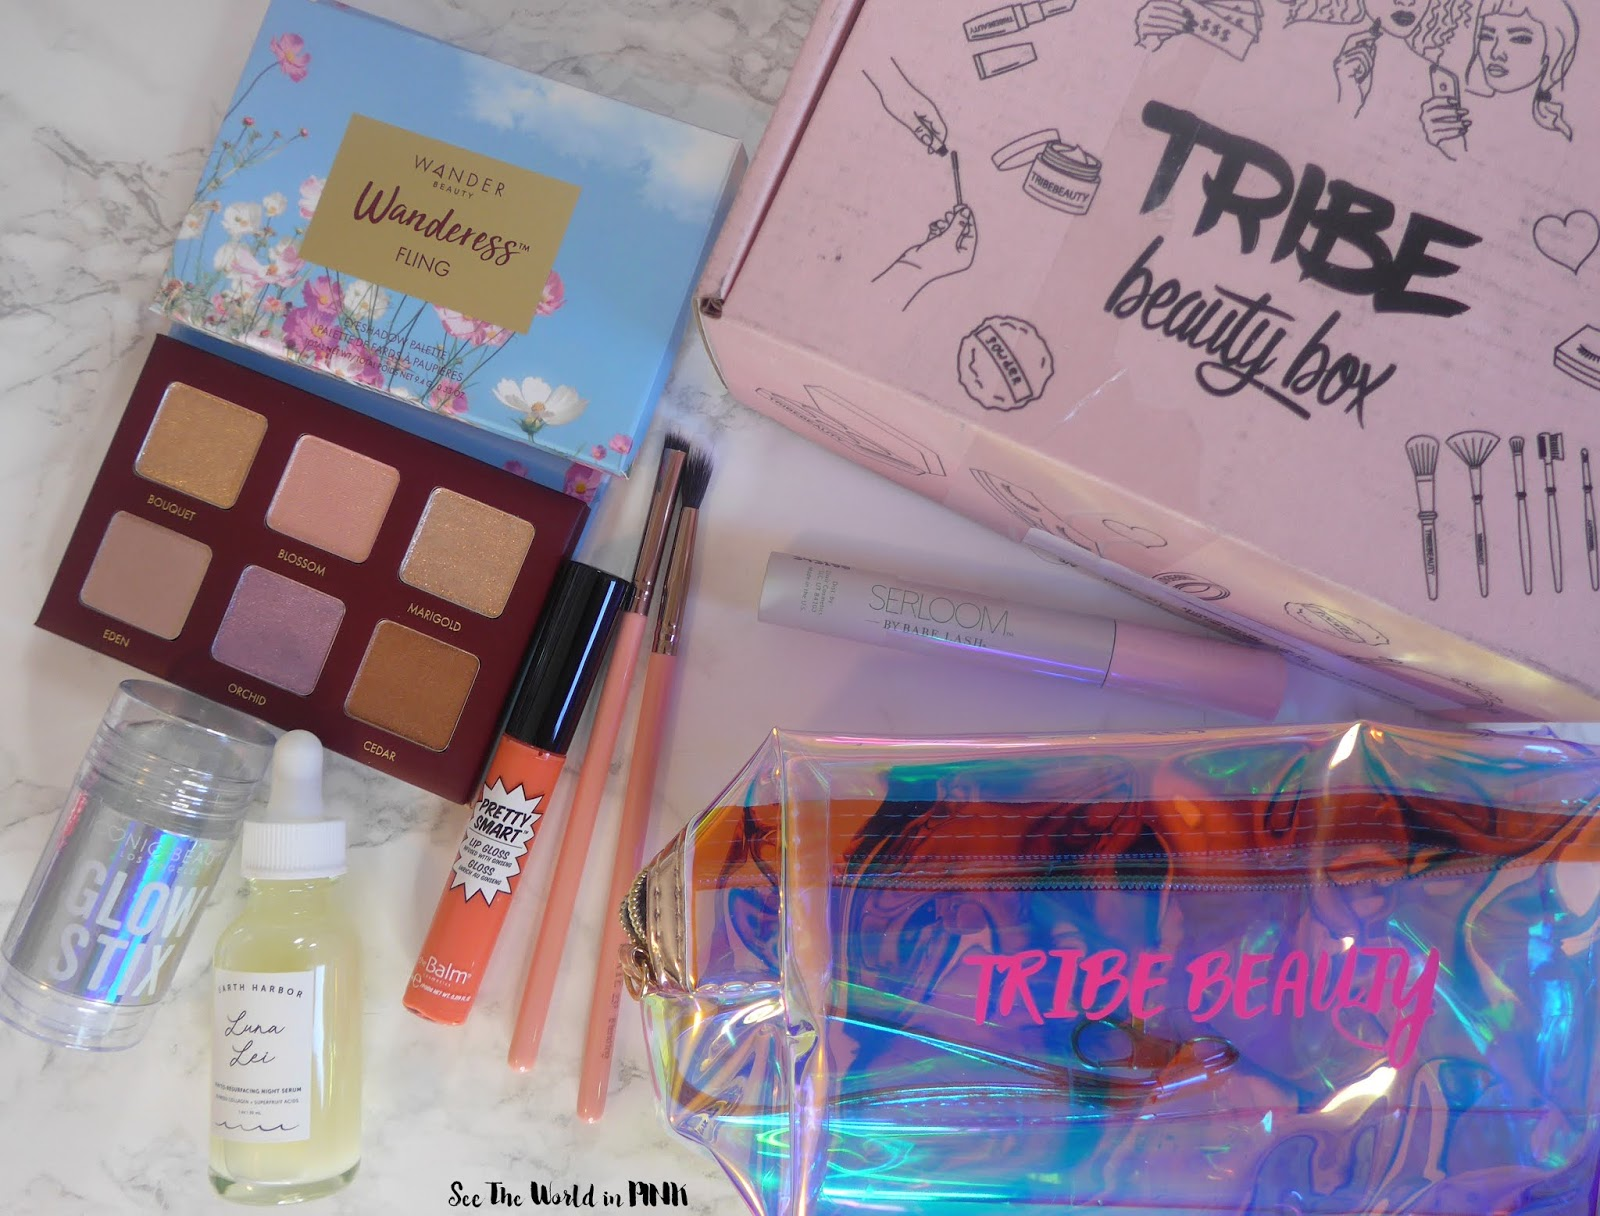 February 2020 Tribe Beauty Box - Unboxing and Review